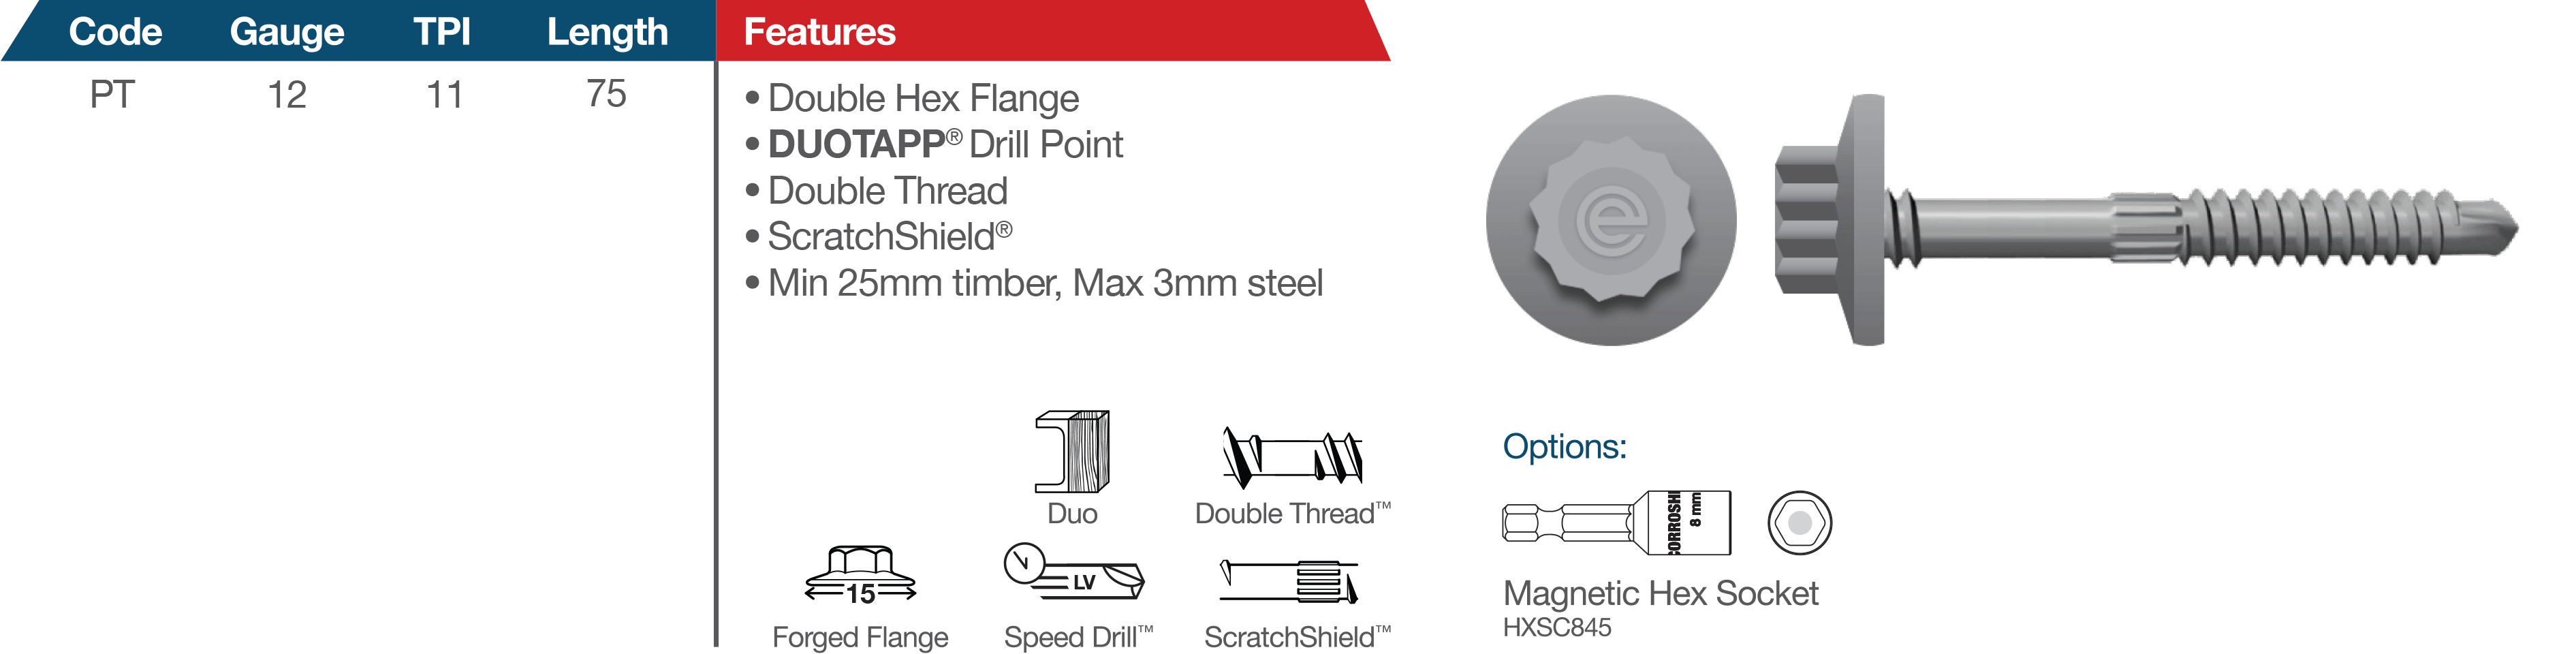 Protapp Roofing and Cladding Fasteners for Hostile Environments